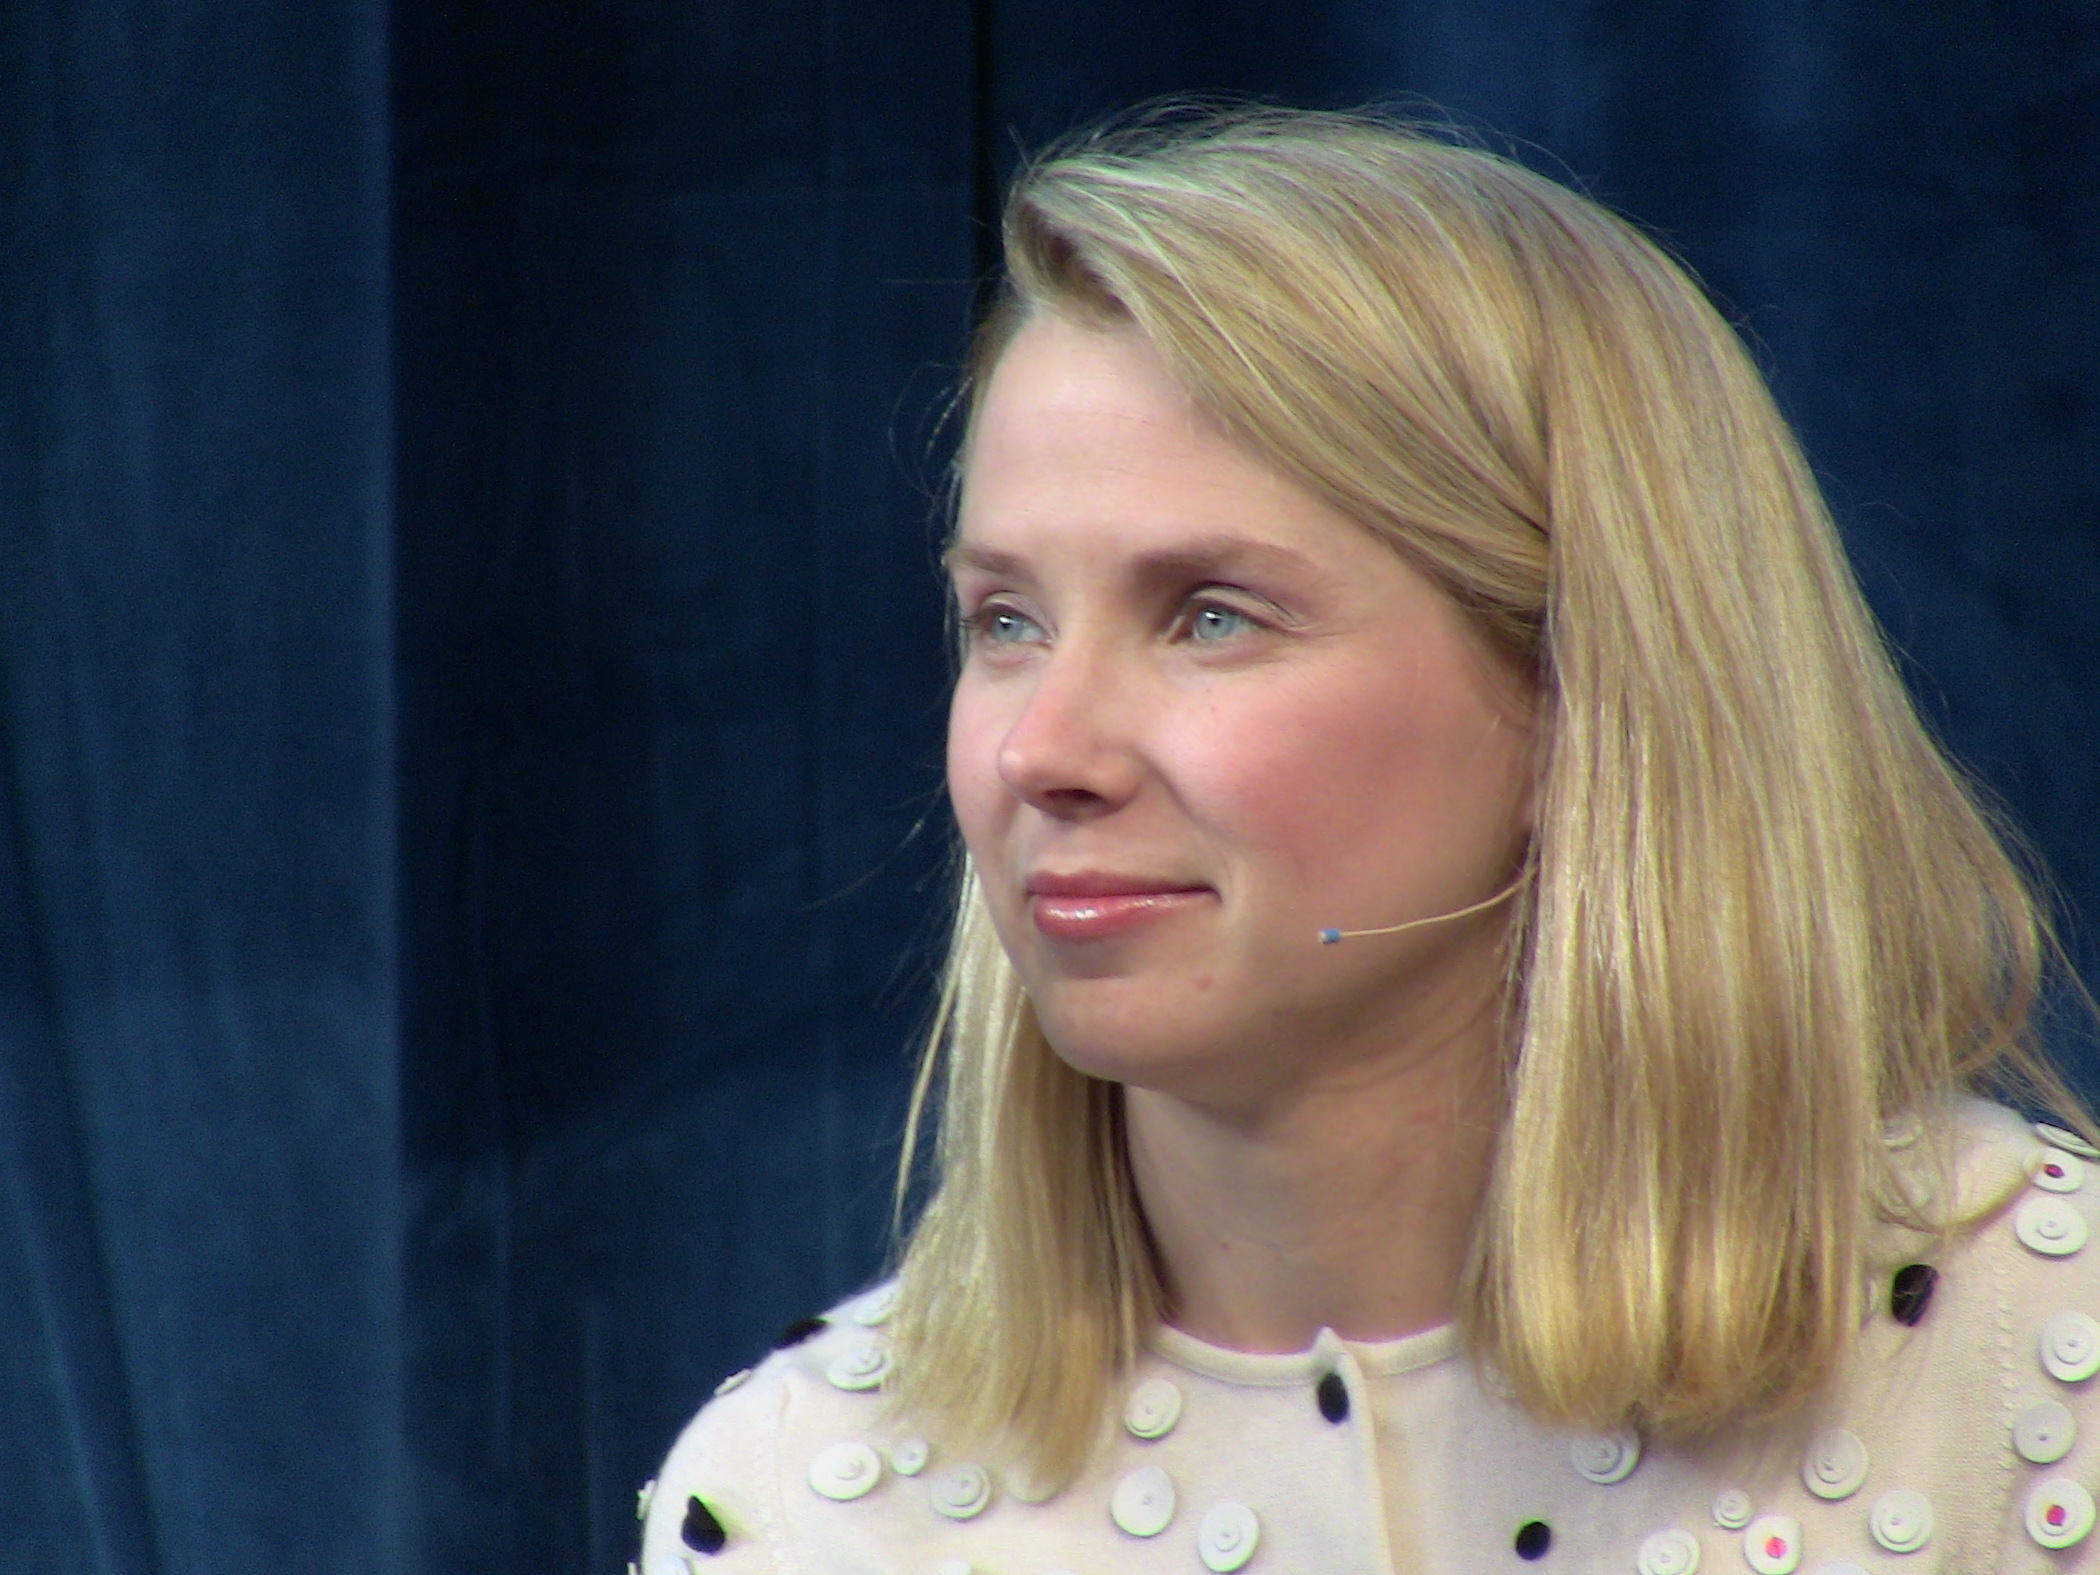 Yahoo CEO Does What To Job Applicants